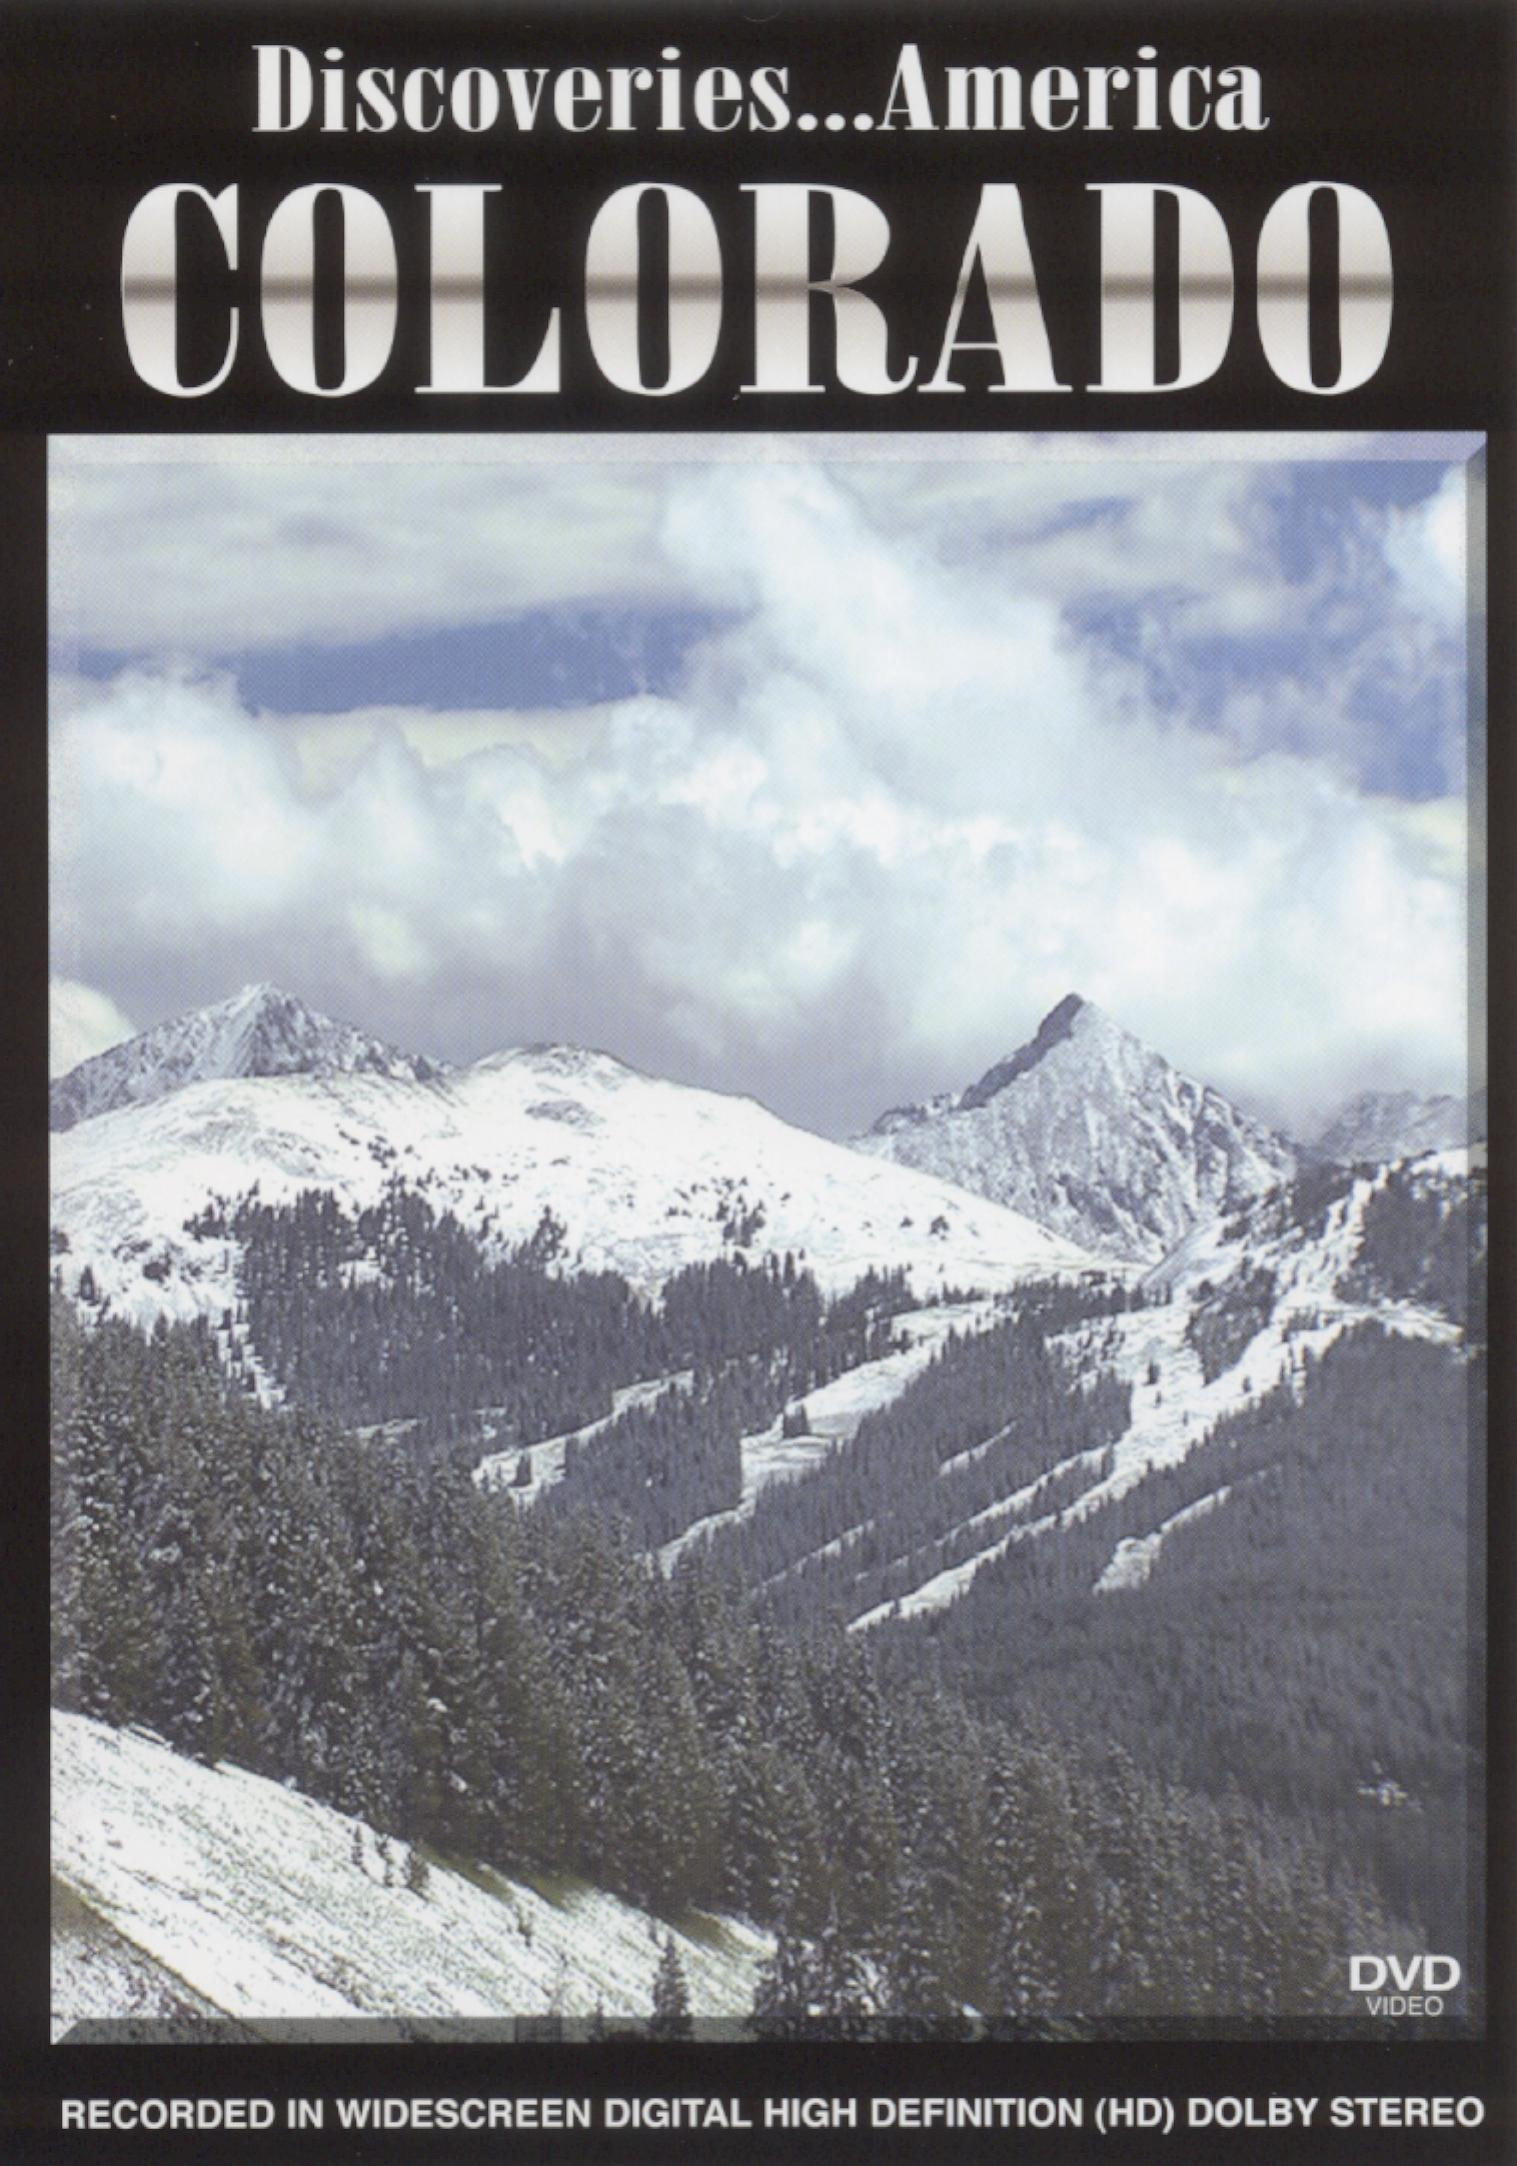 Discoveries... America: Colorado